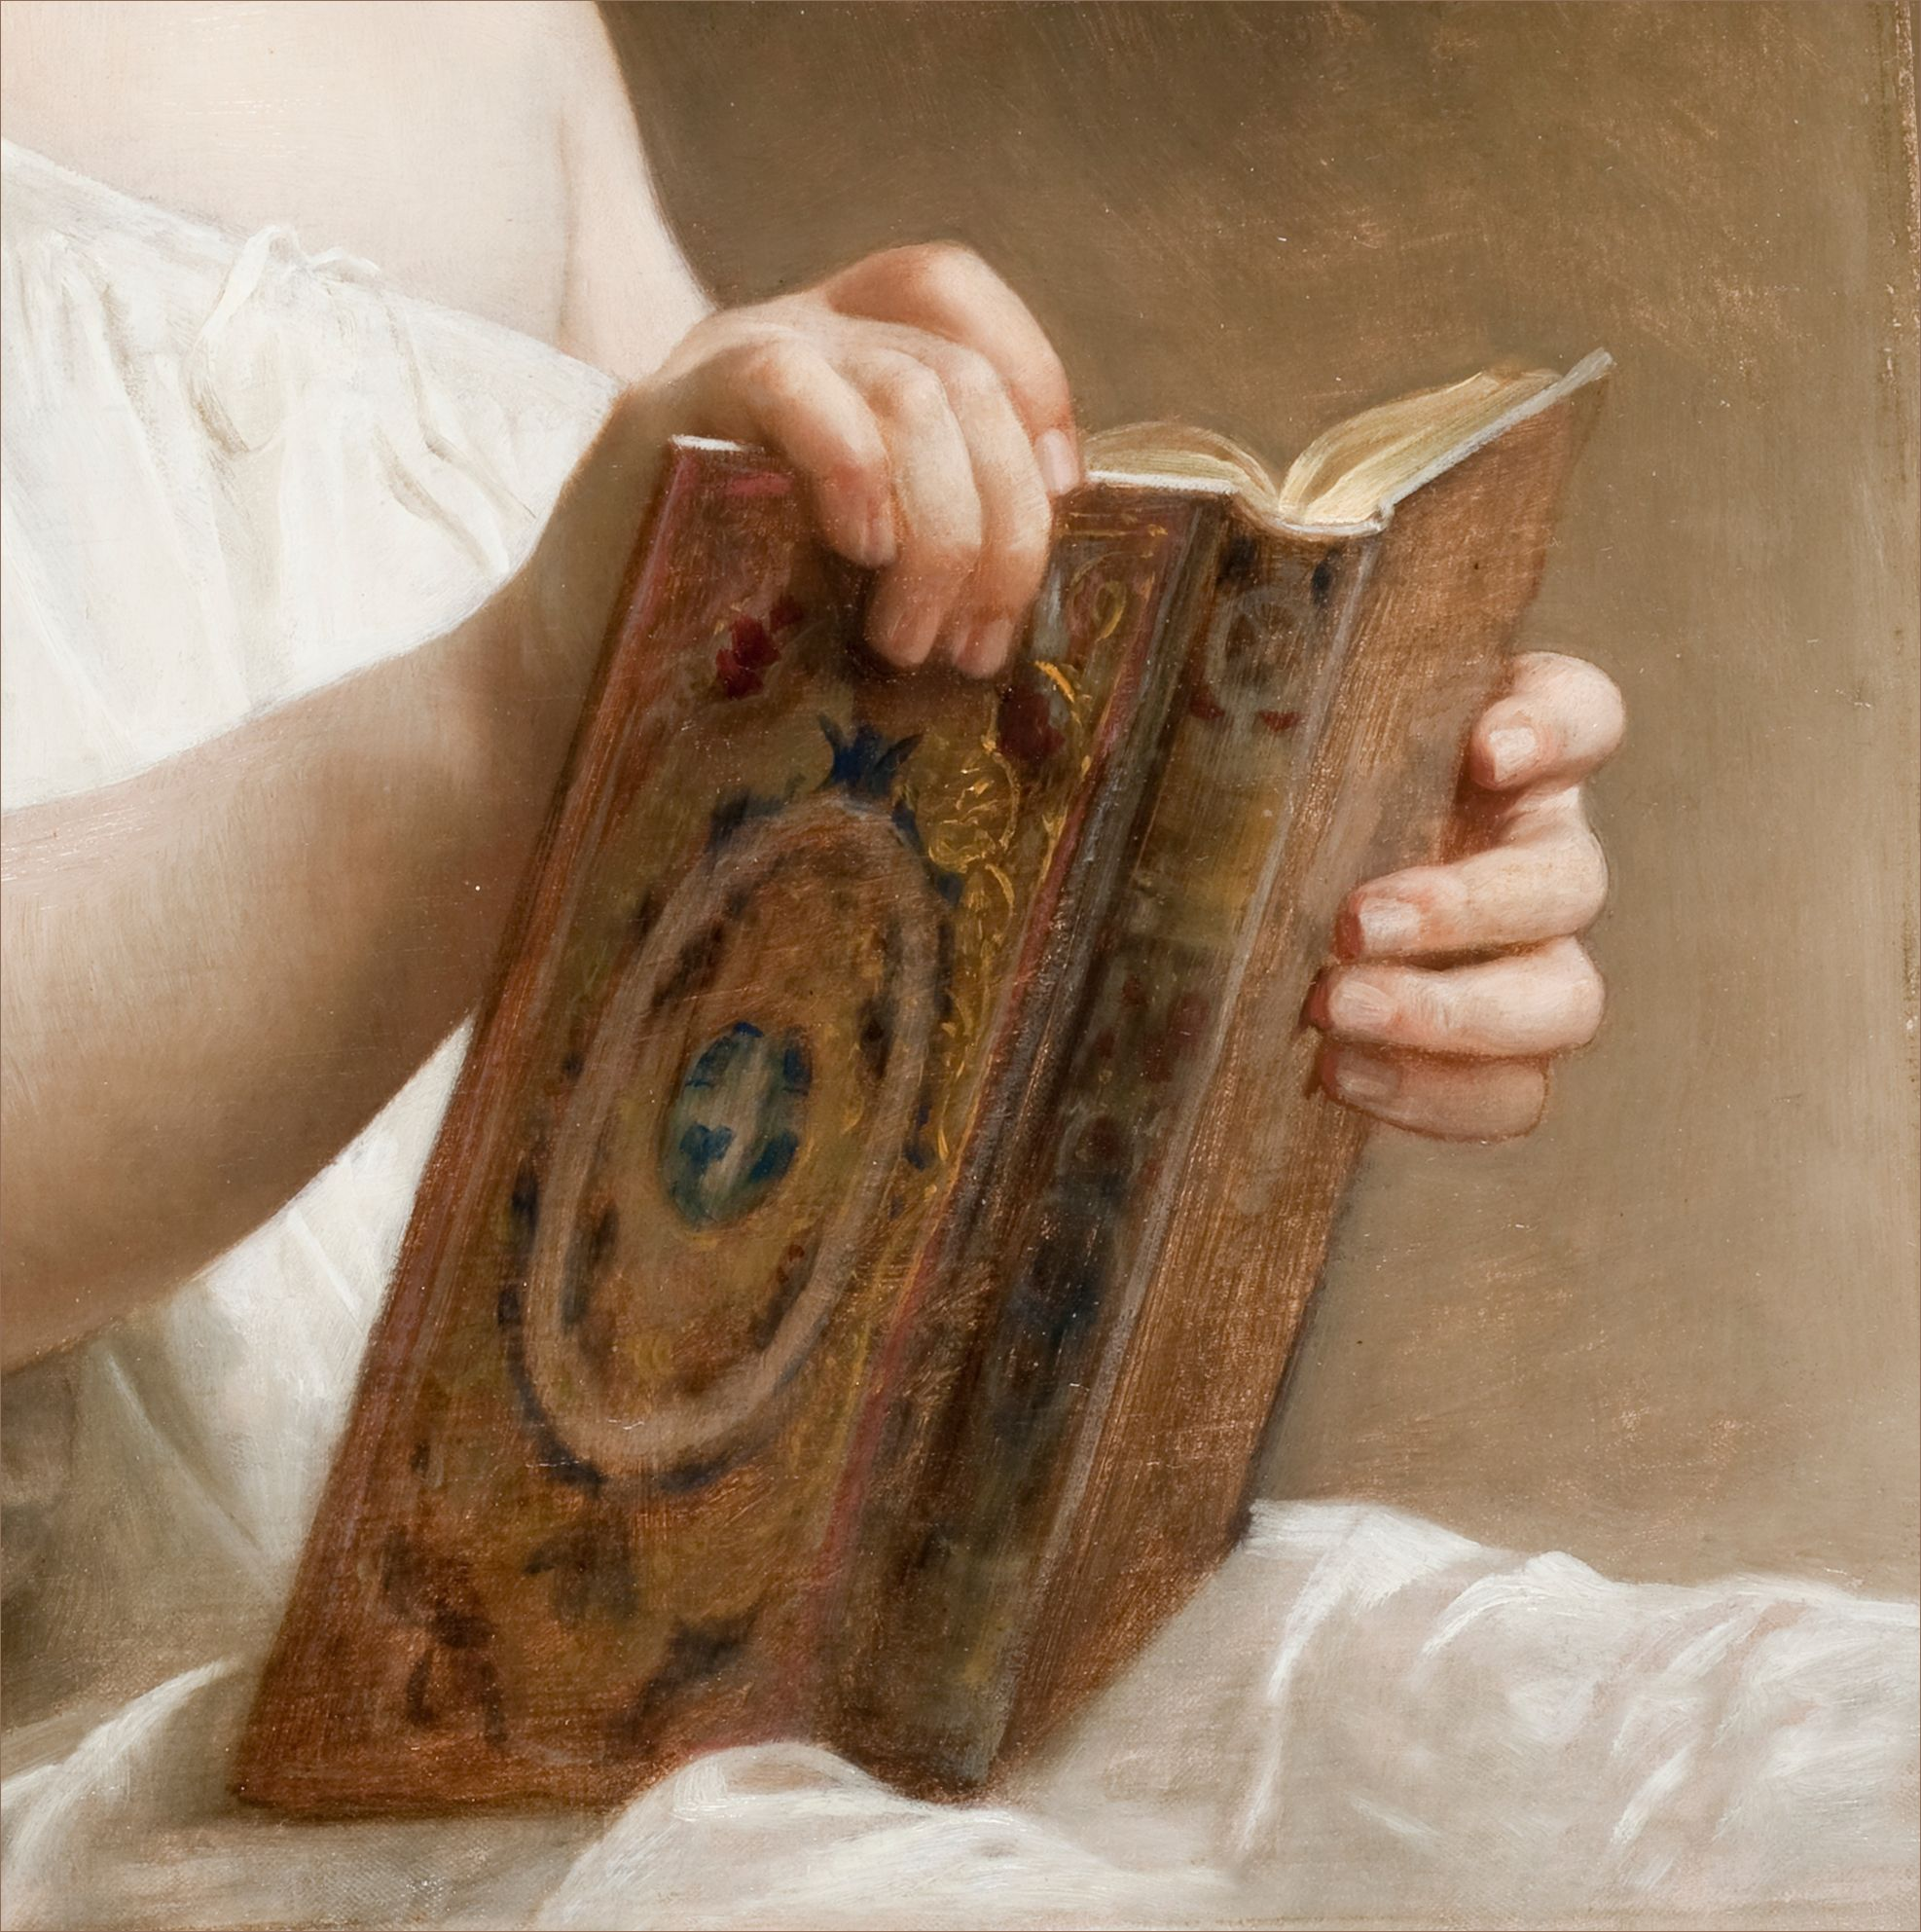 William-Adolphe Bouguereau - The story book, 1877 - France. W.A.Bouguereau was a member of the Pre-Raphaelite Brotherwood.